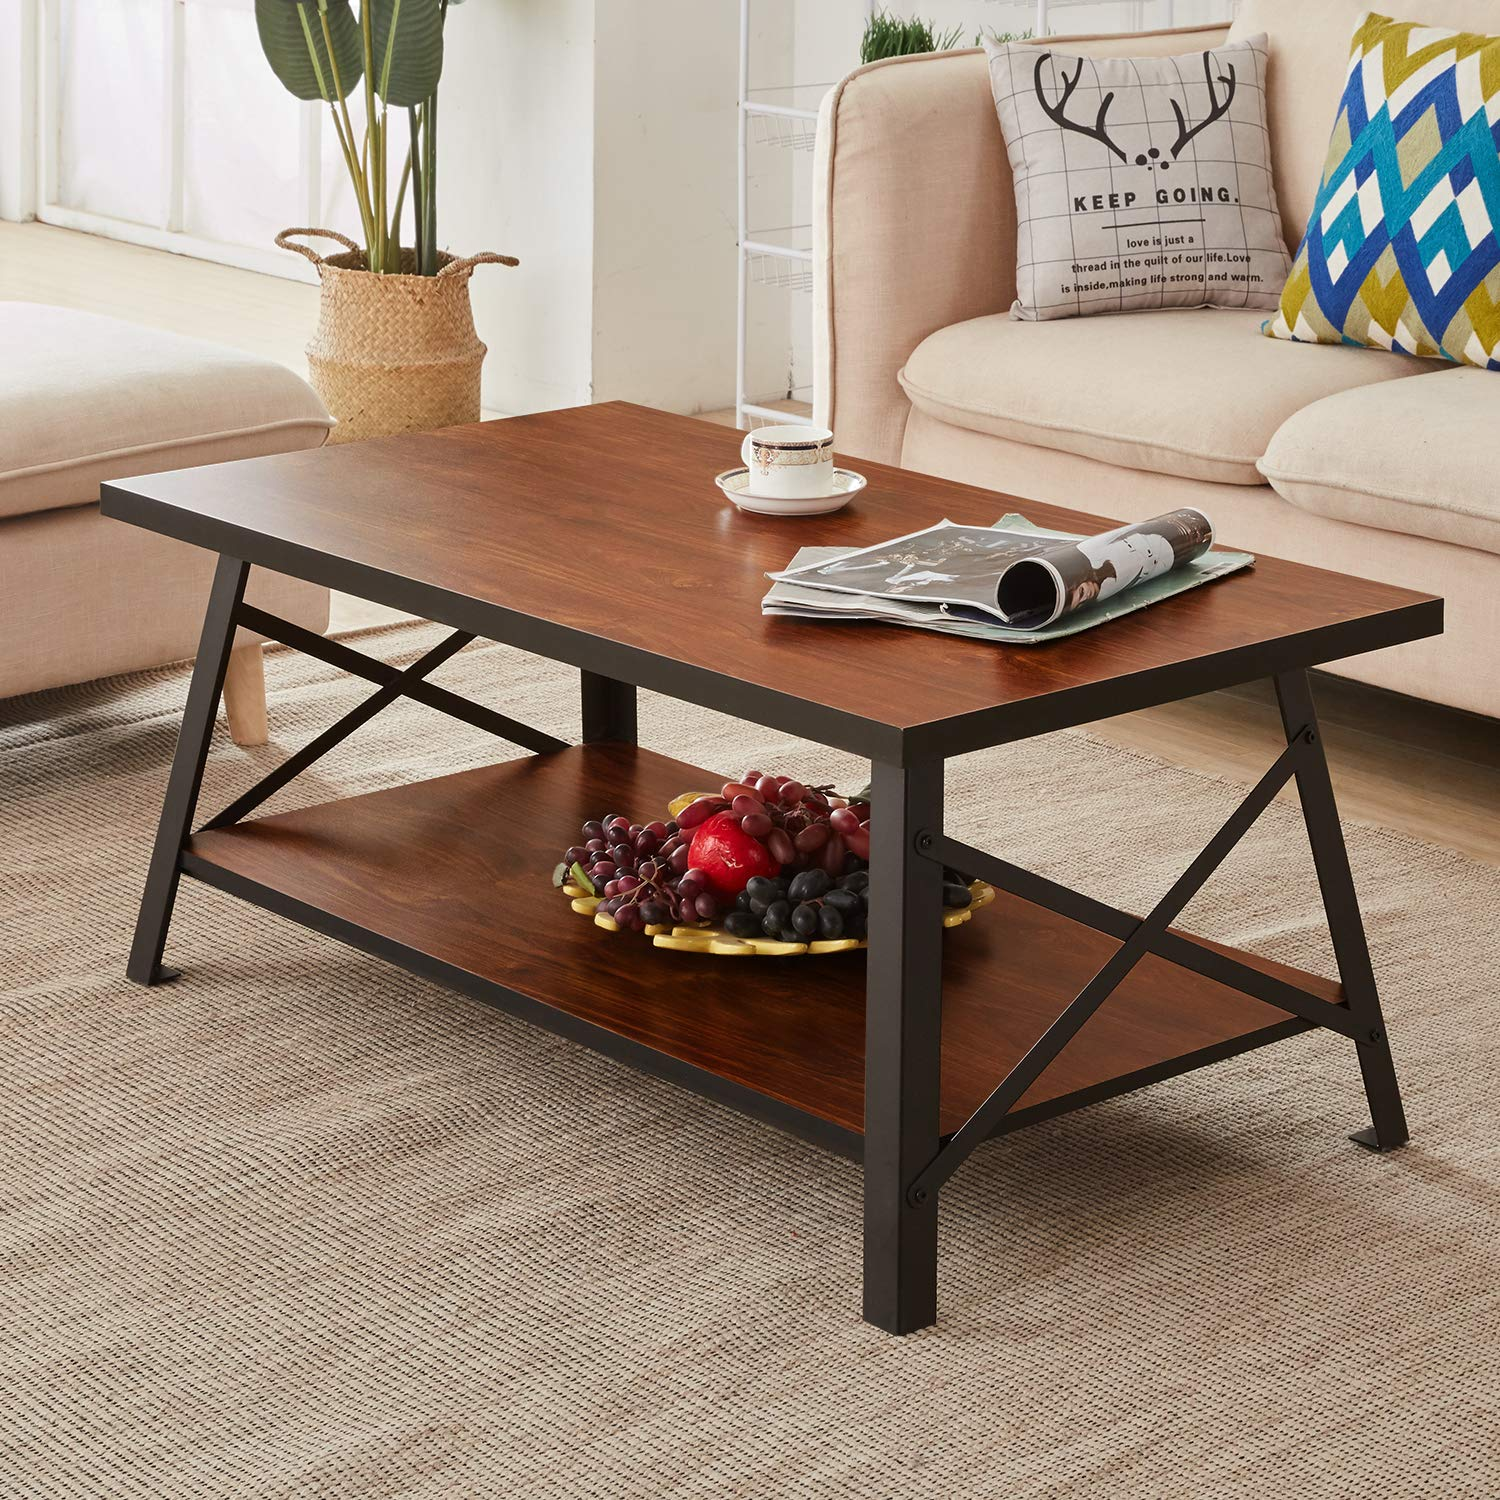 Wondrous Vecelo Vintage Coffee Table For Living Room Rustic Cocktail Table With Storage Open Shelf Black Metal Frame Brown Uwap Interior Chair Design Uwaporg